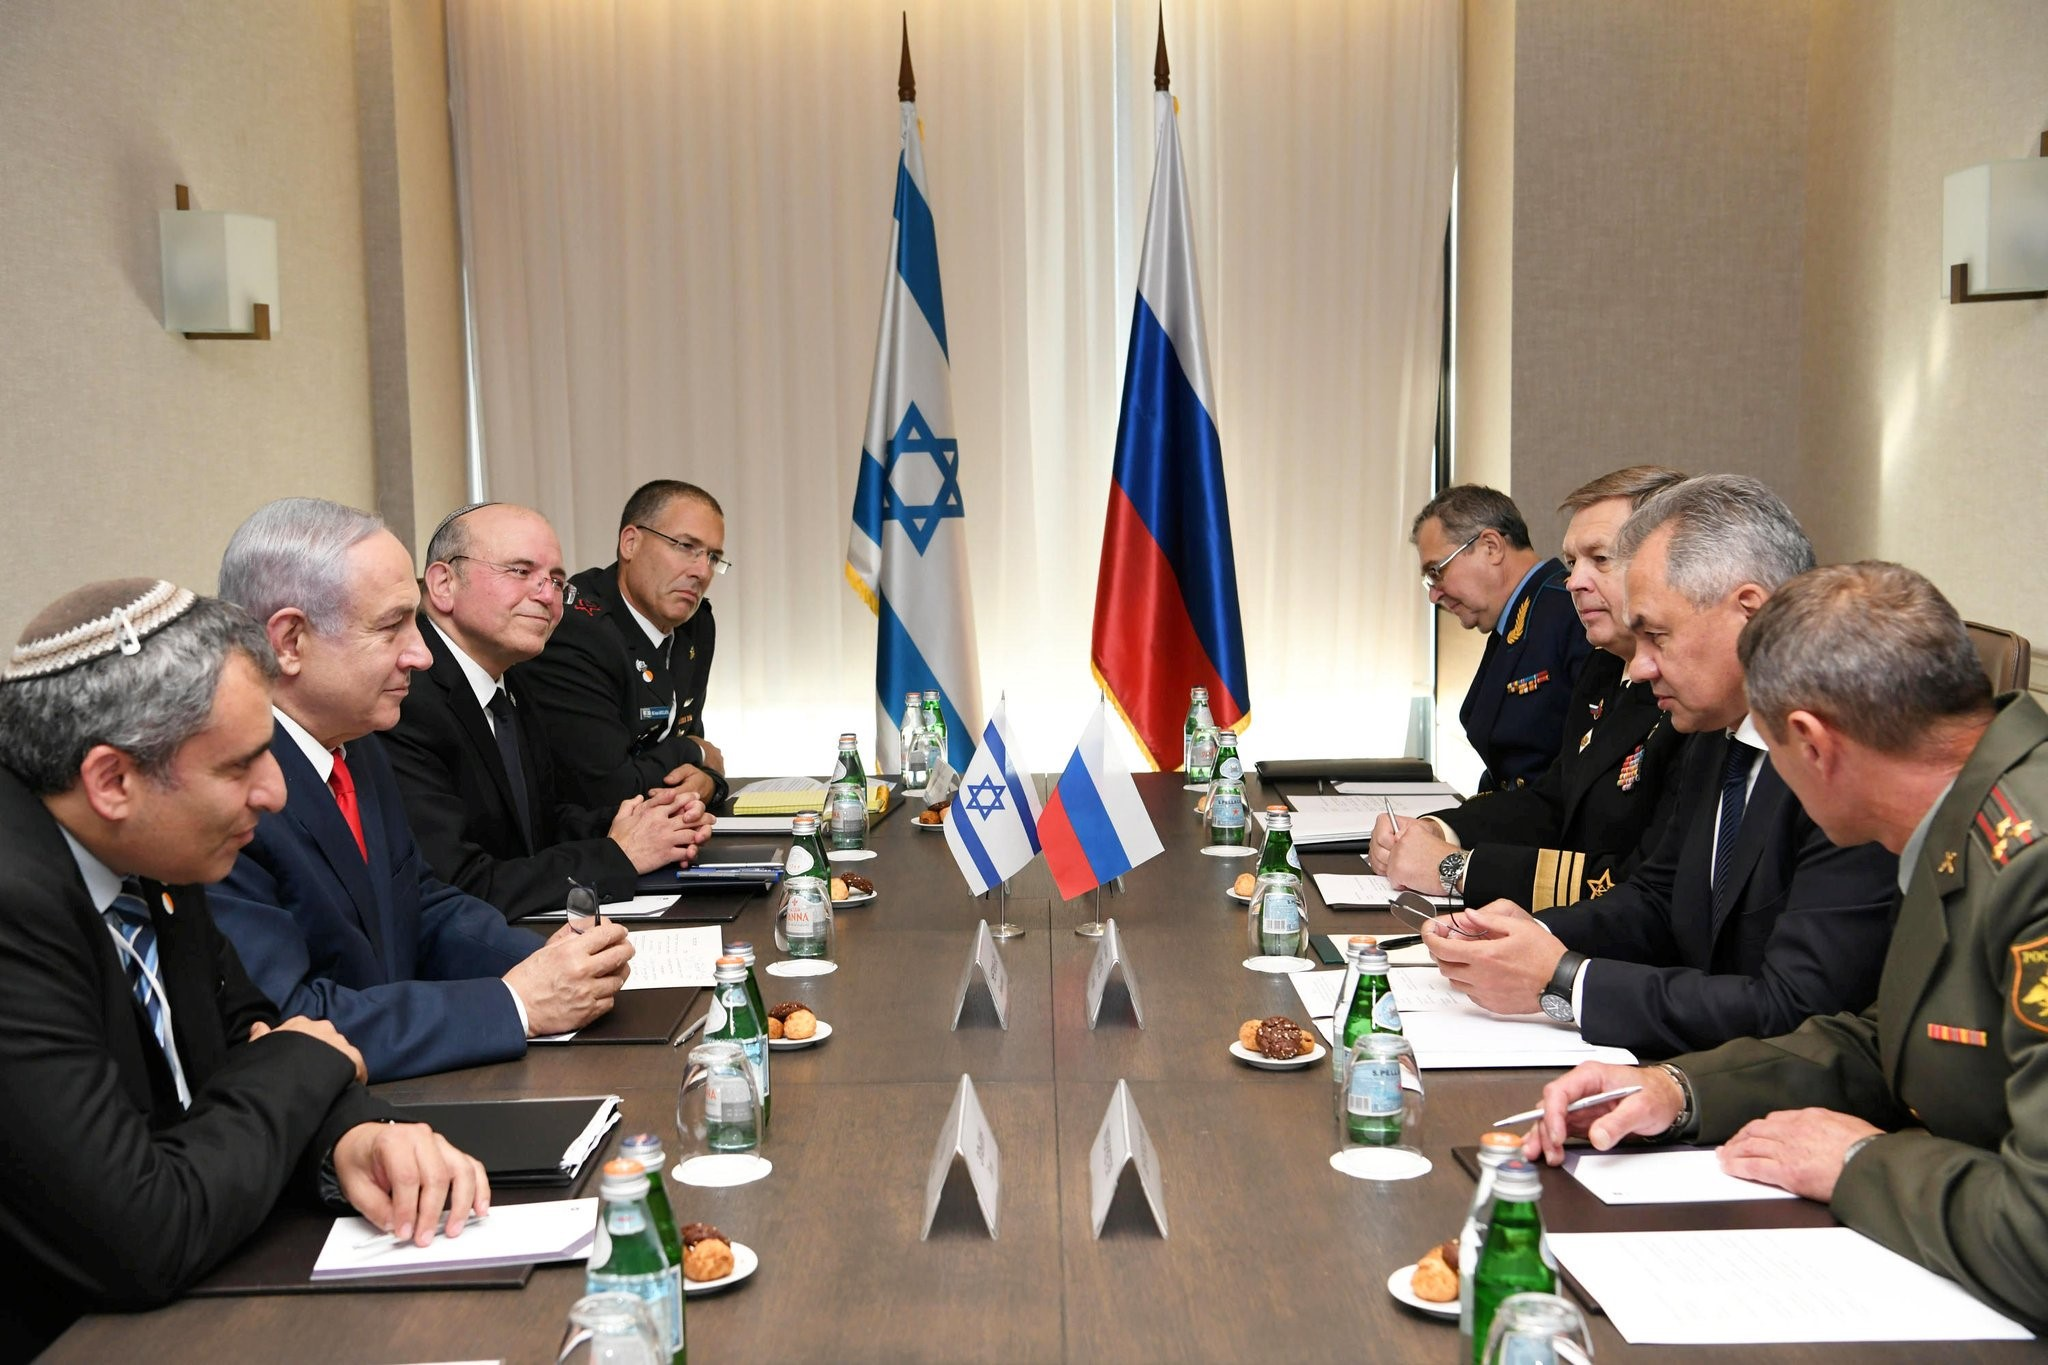 PM Netanyahu and Israeli Delegation Pay a Pre-Election Visit to Sochi